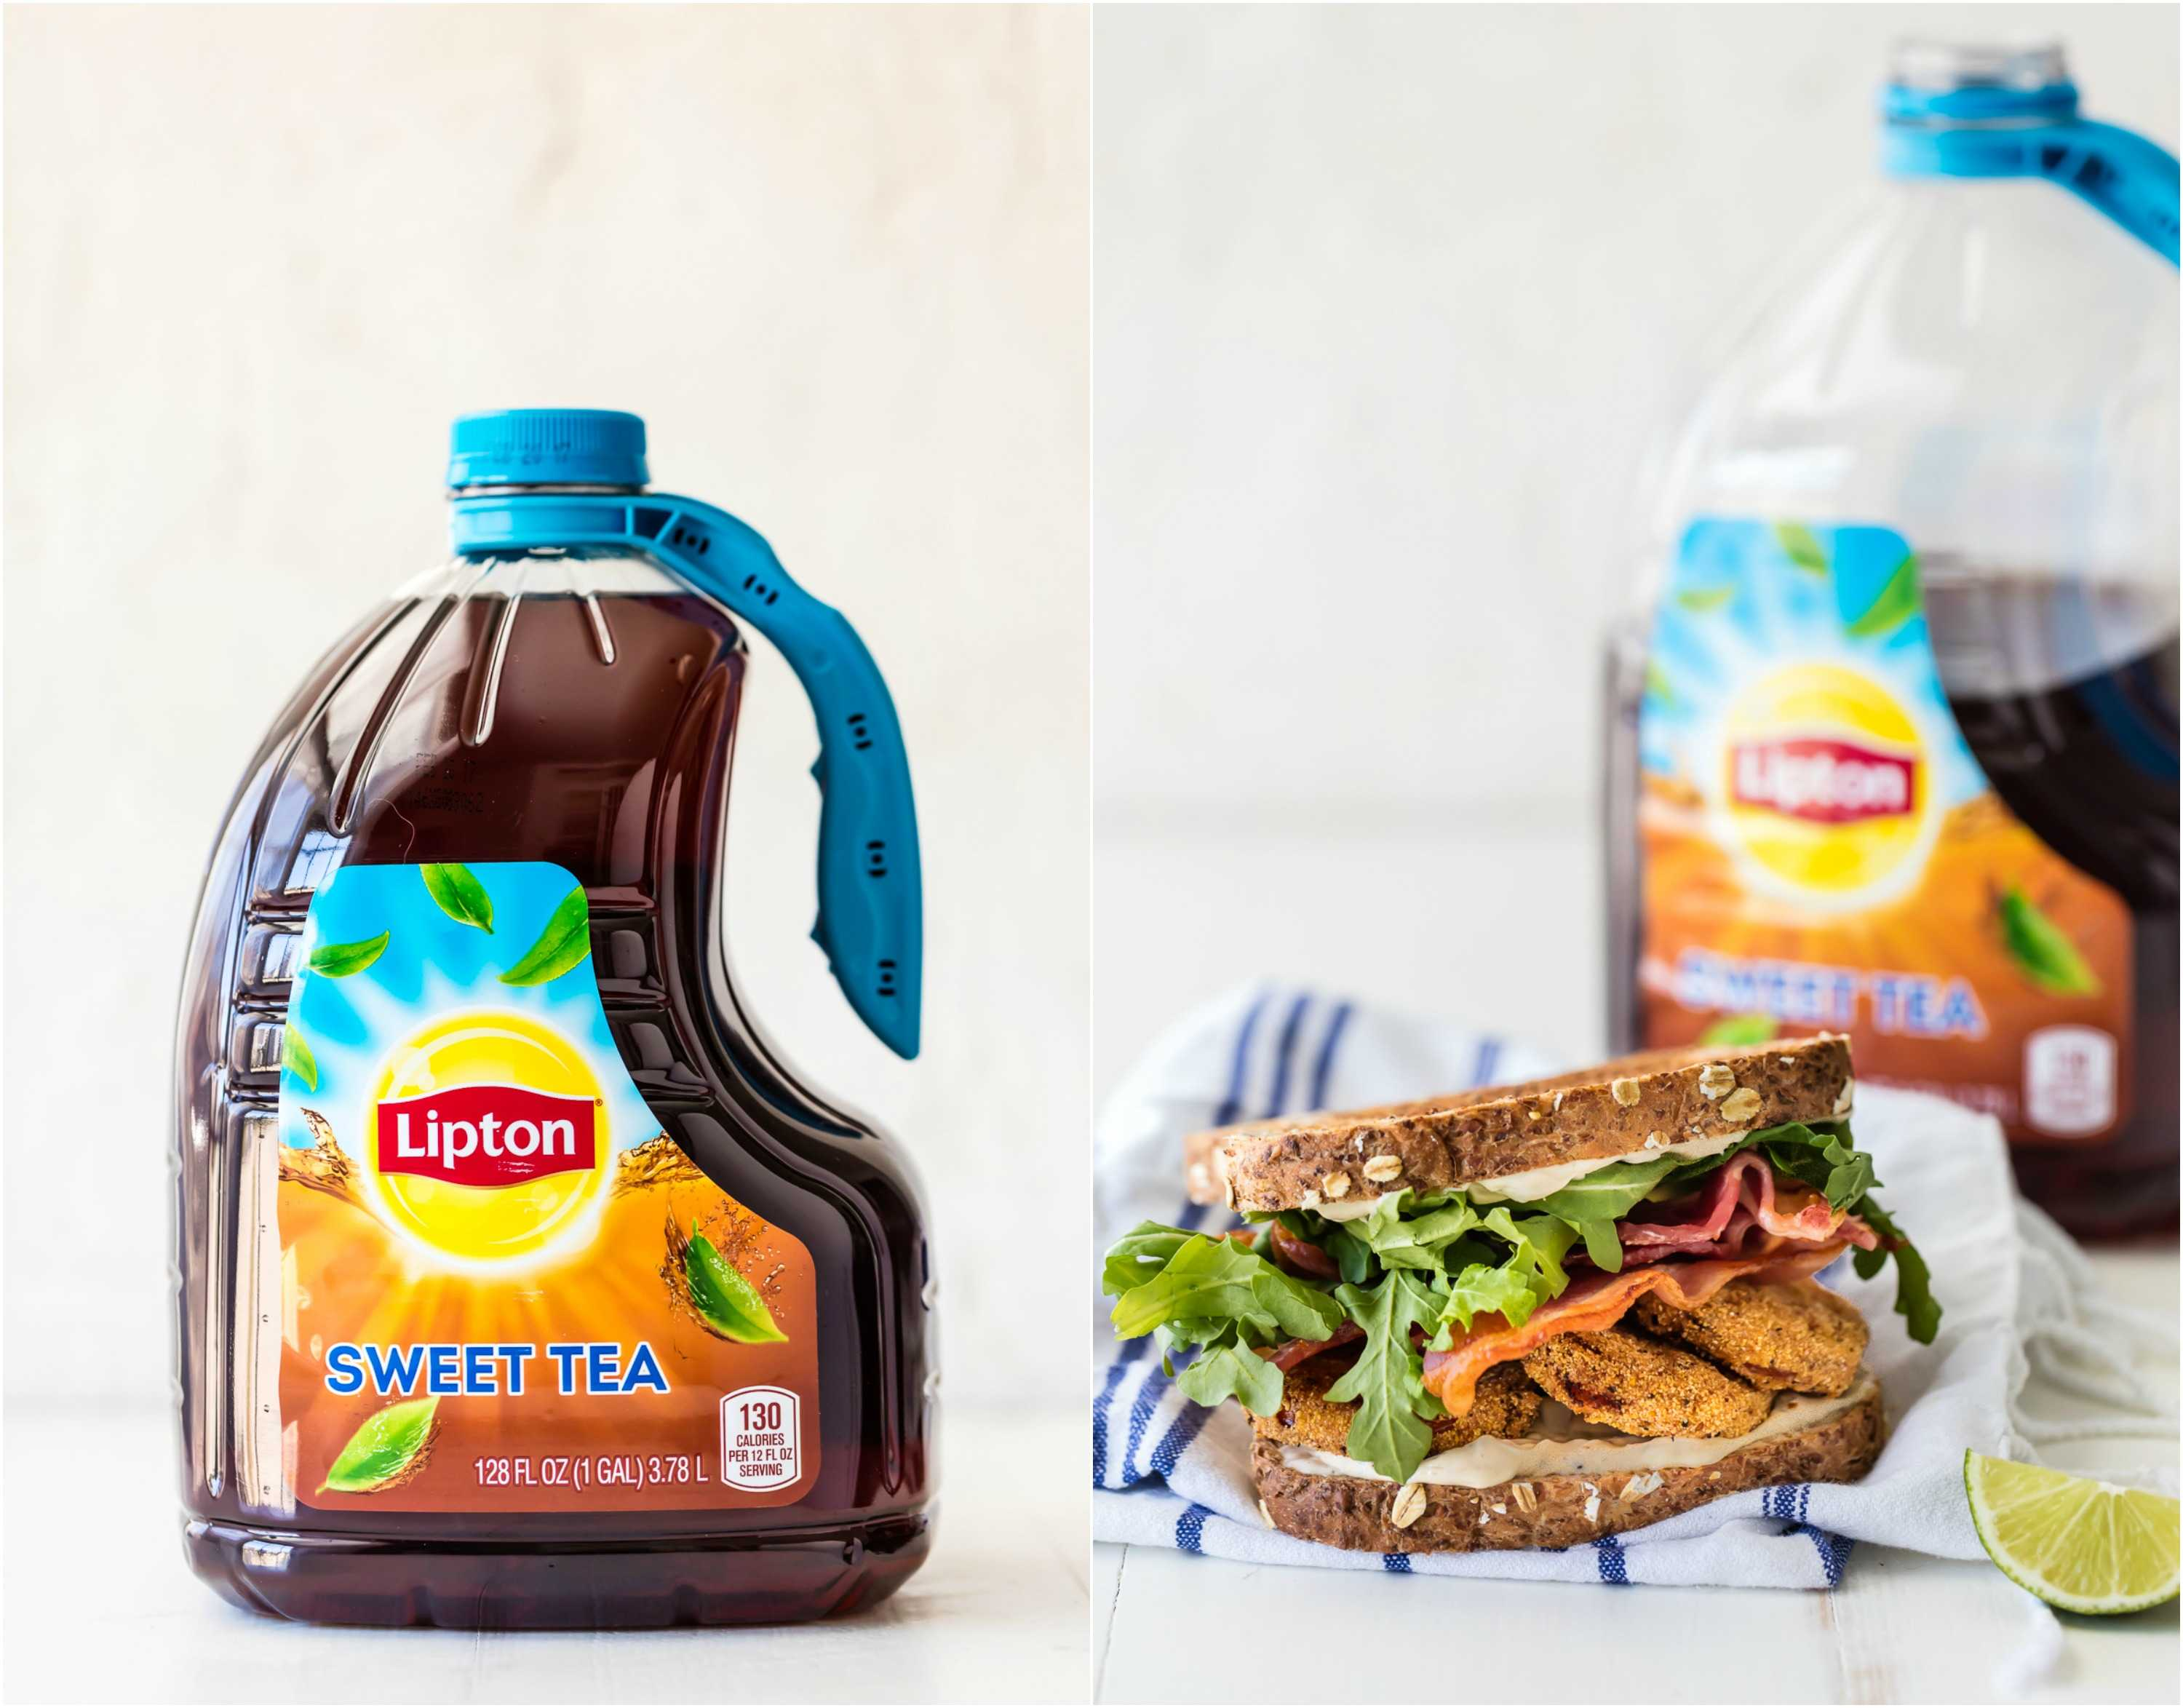 Photo Collage: a jug of Lipton Sweet Tea and a BLT sandwich